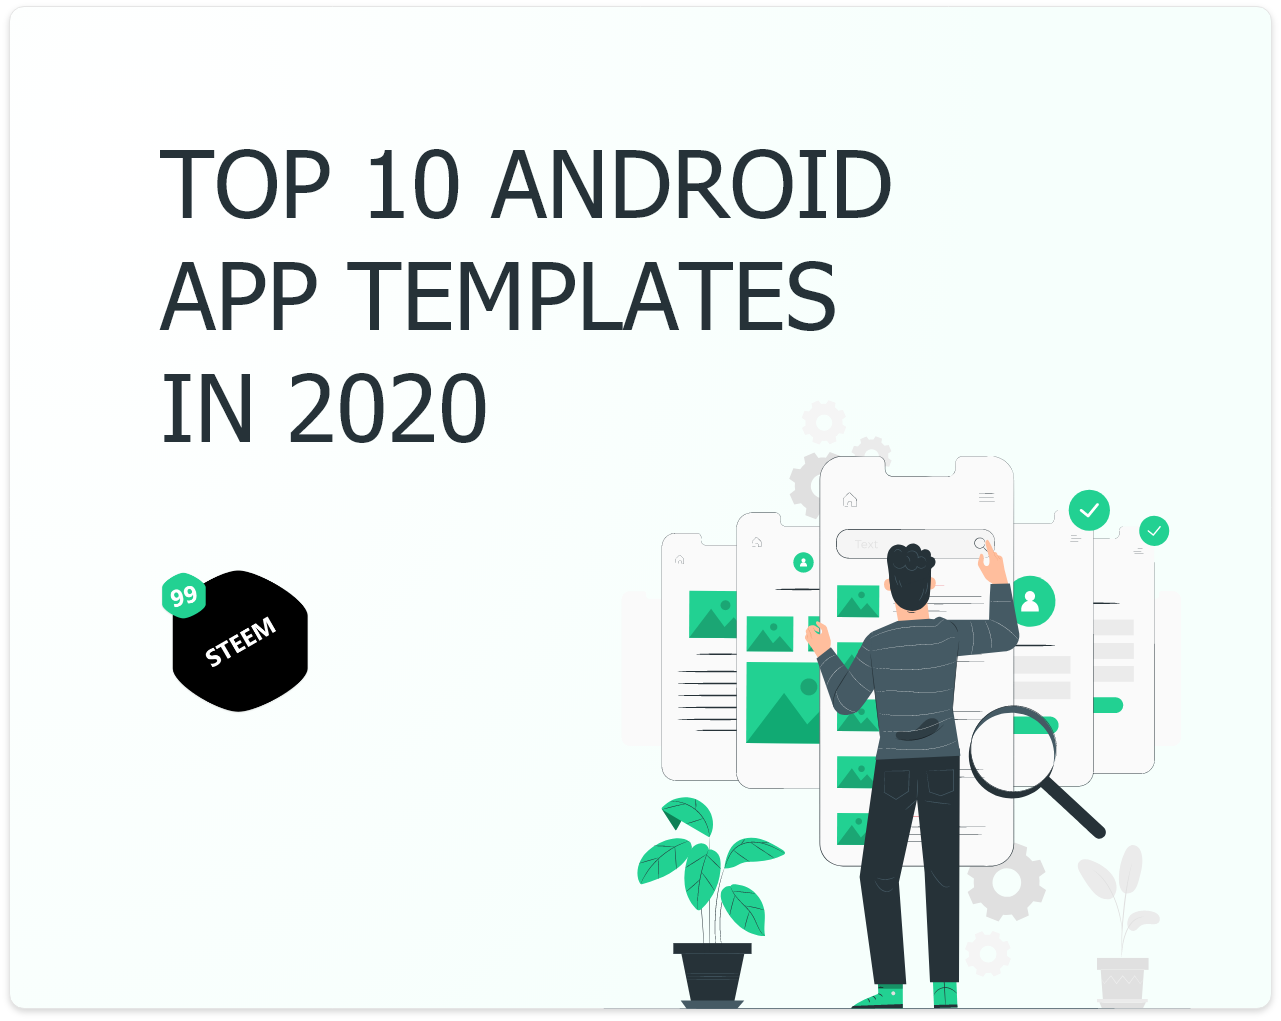 Top 10 Android App templates in 2020